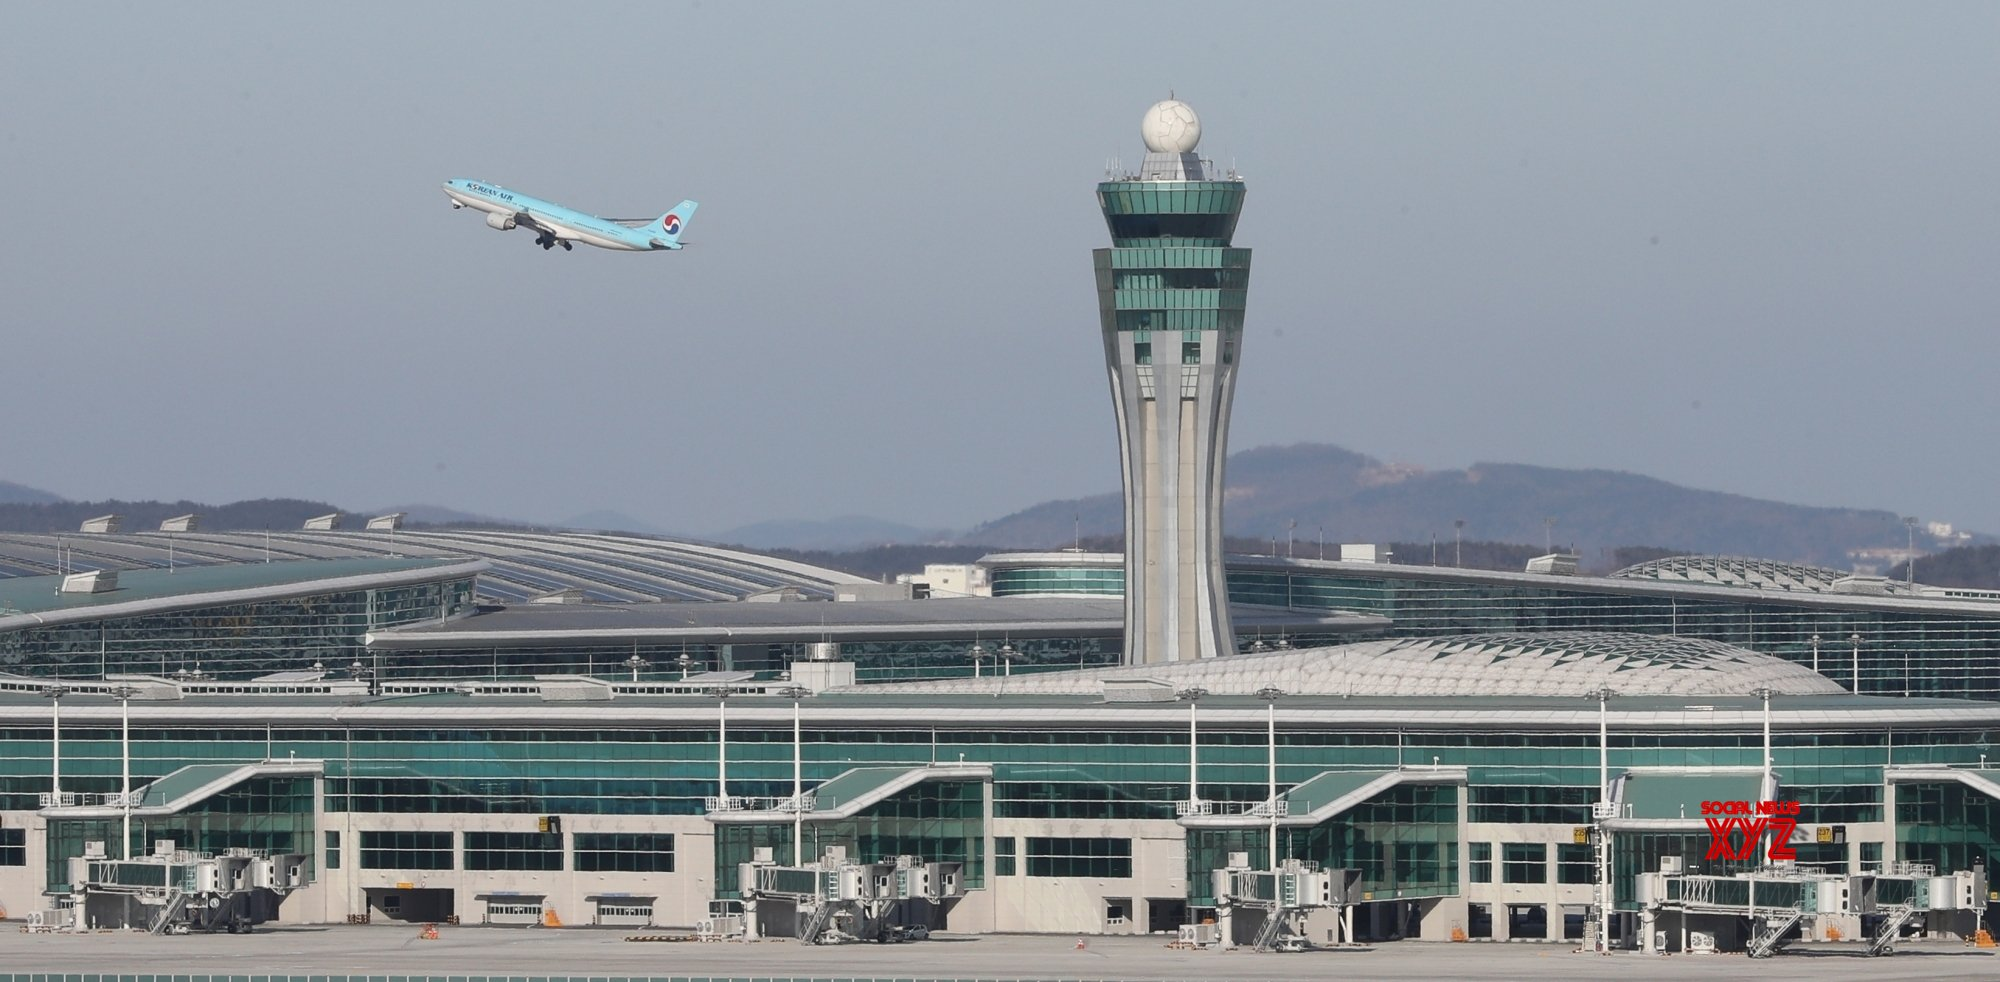 172 S.Koreans arrive from India via special flight